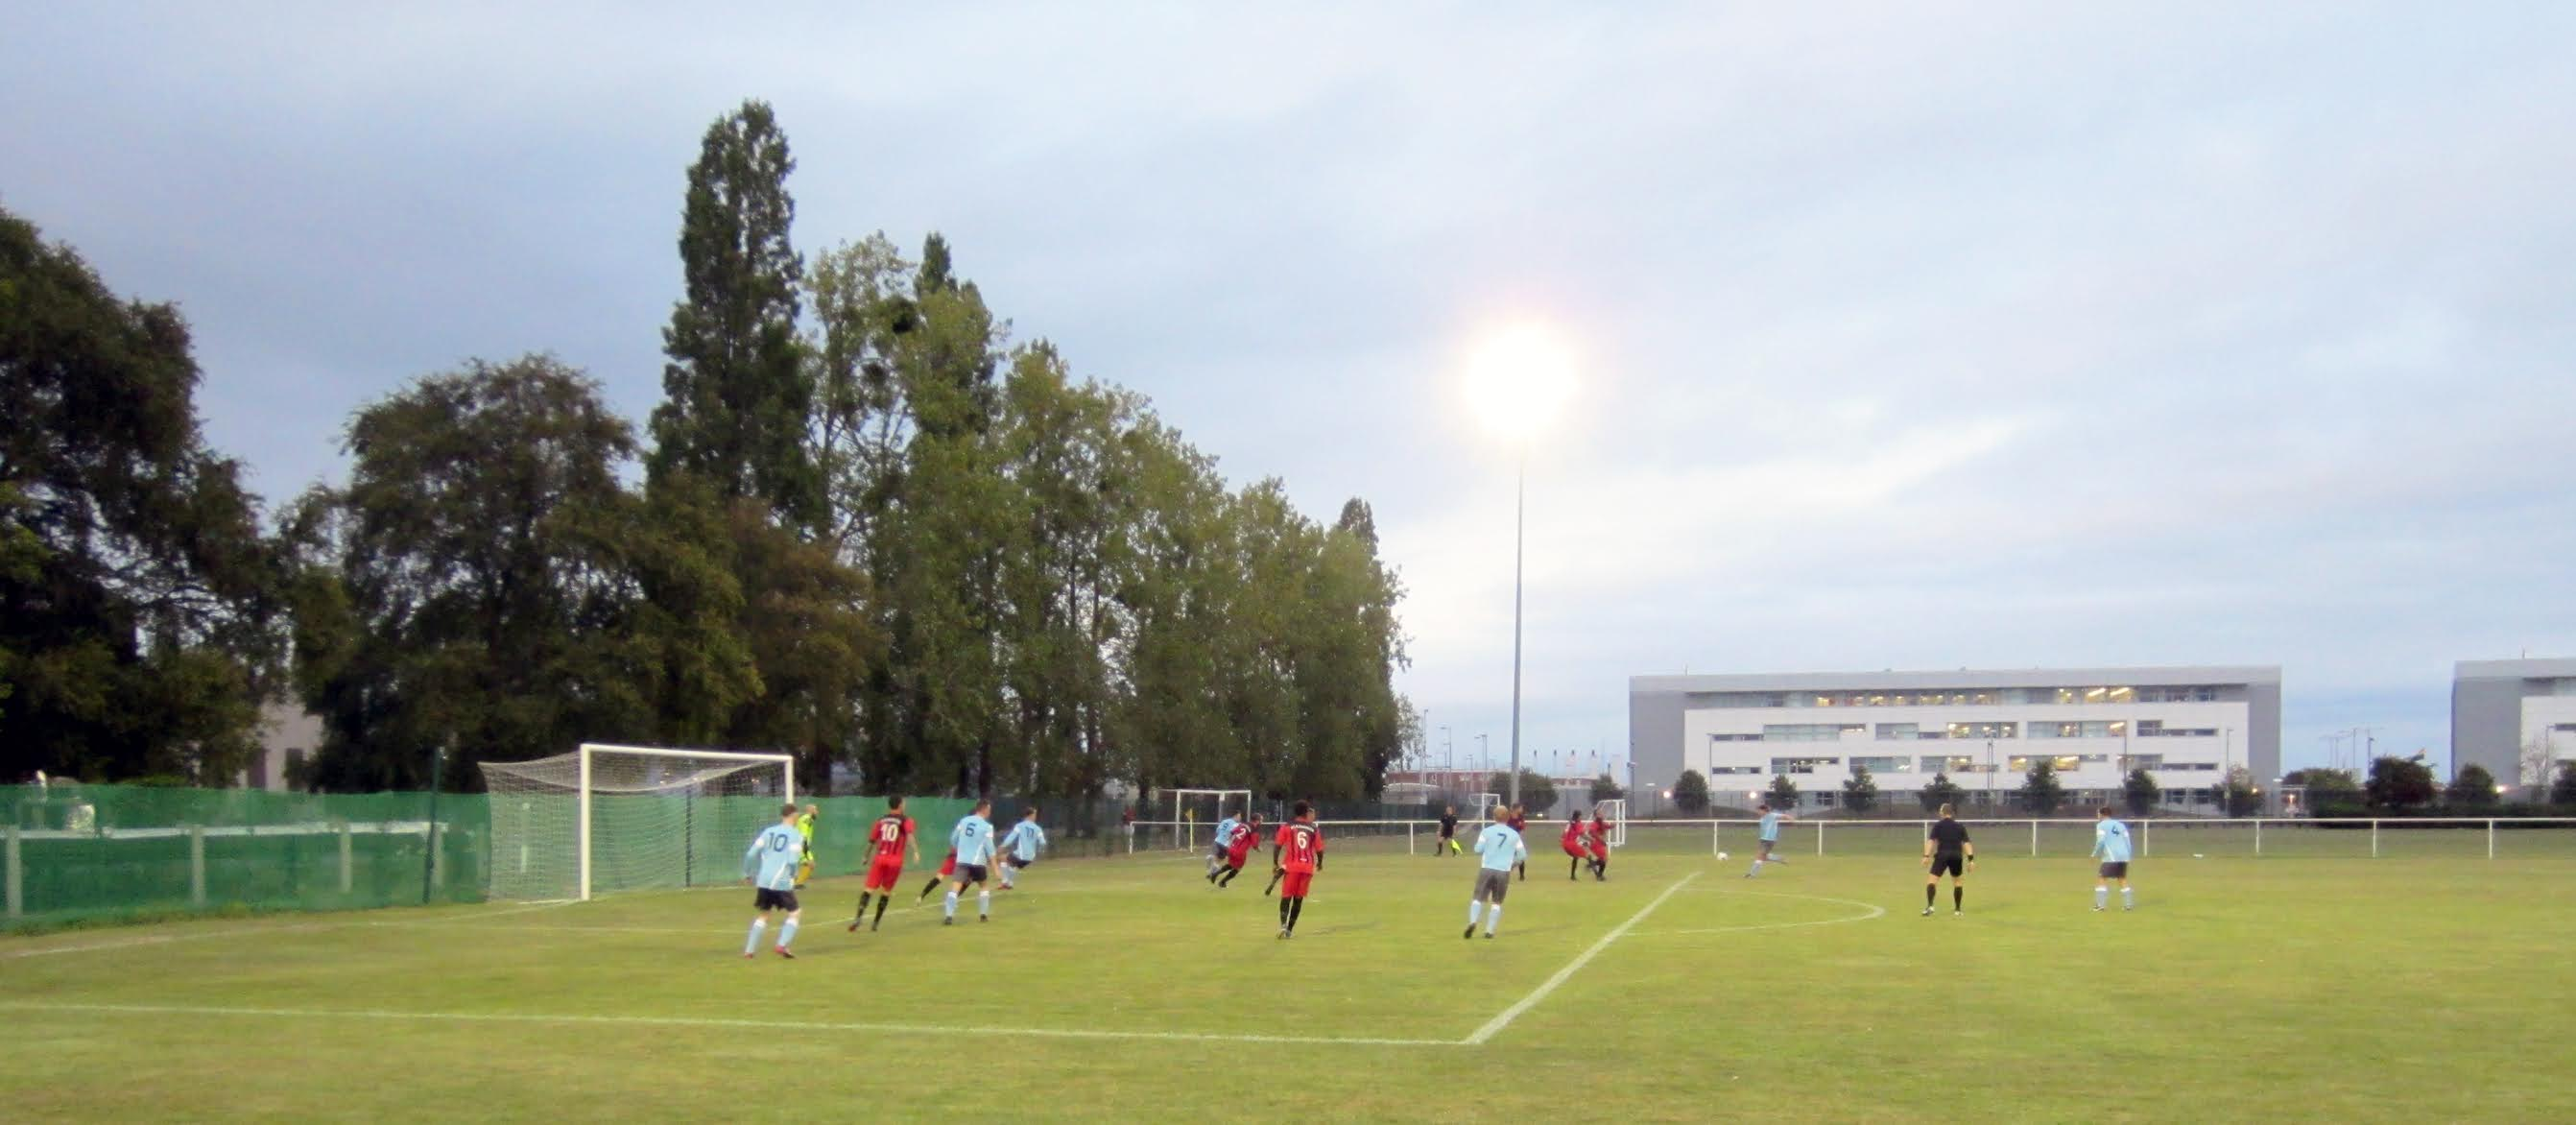 A Woodley United player takes a shot at Aldermaston Recreational Society